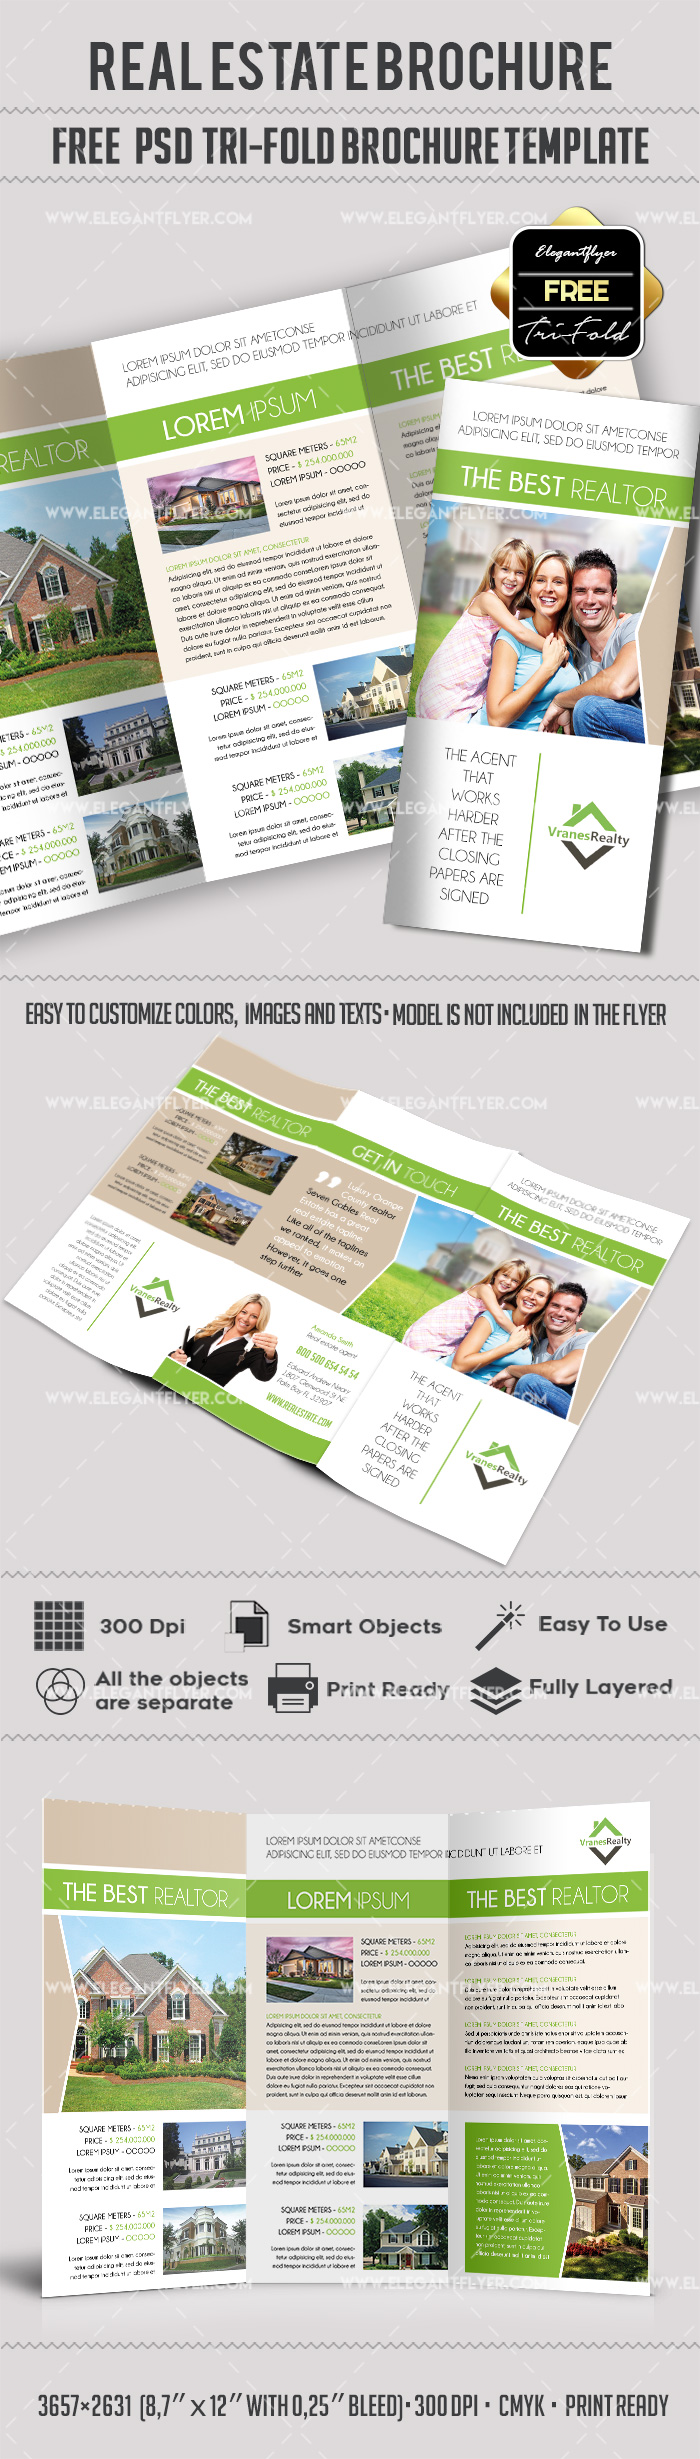 Free real estate trifold brochure template in psd by for Real estate brochure templates psd free download